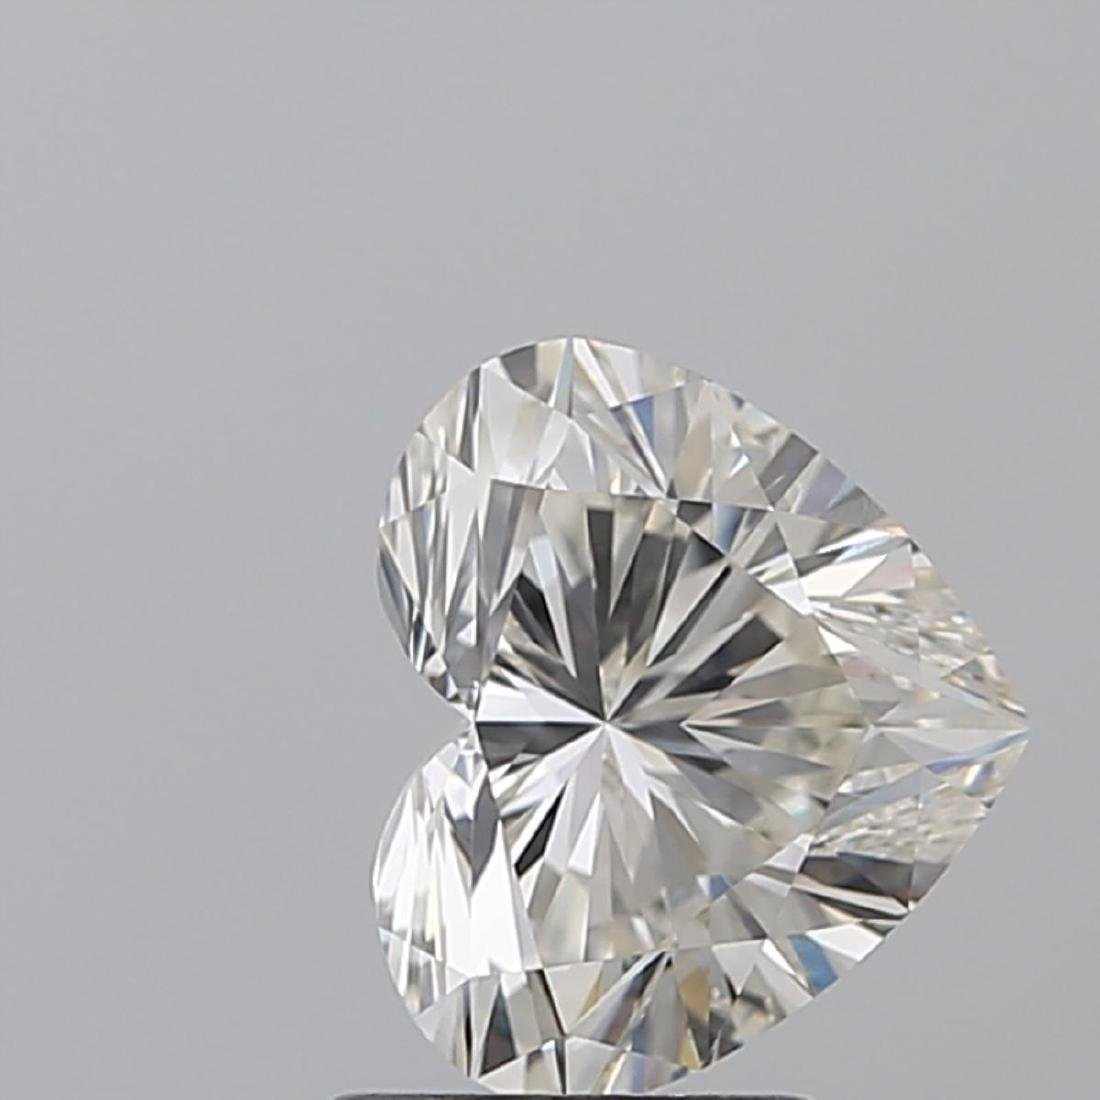 2.04 ct, Color F/VVS1, Heart cut Diamond - 2